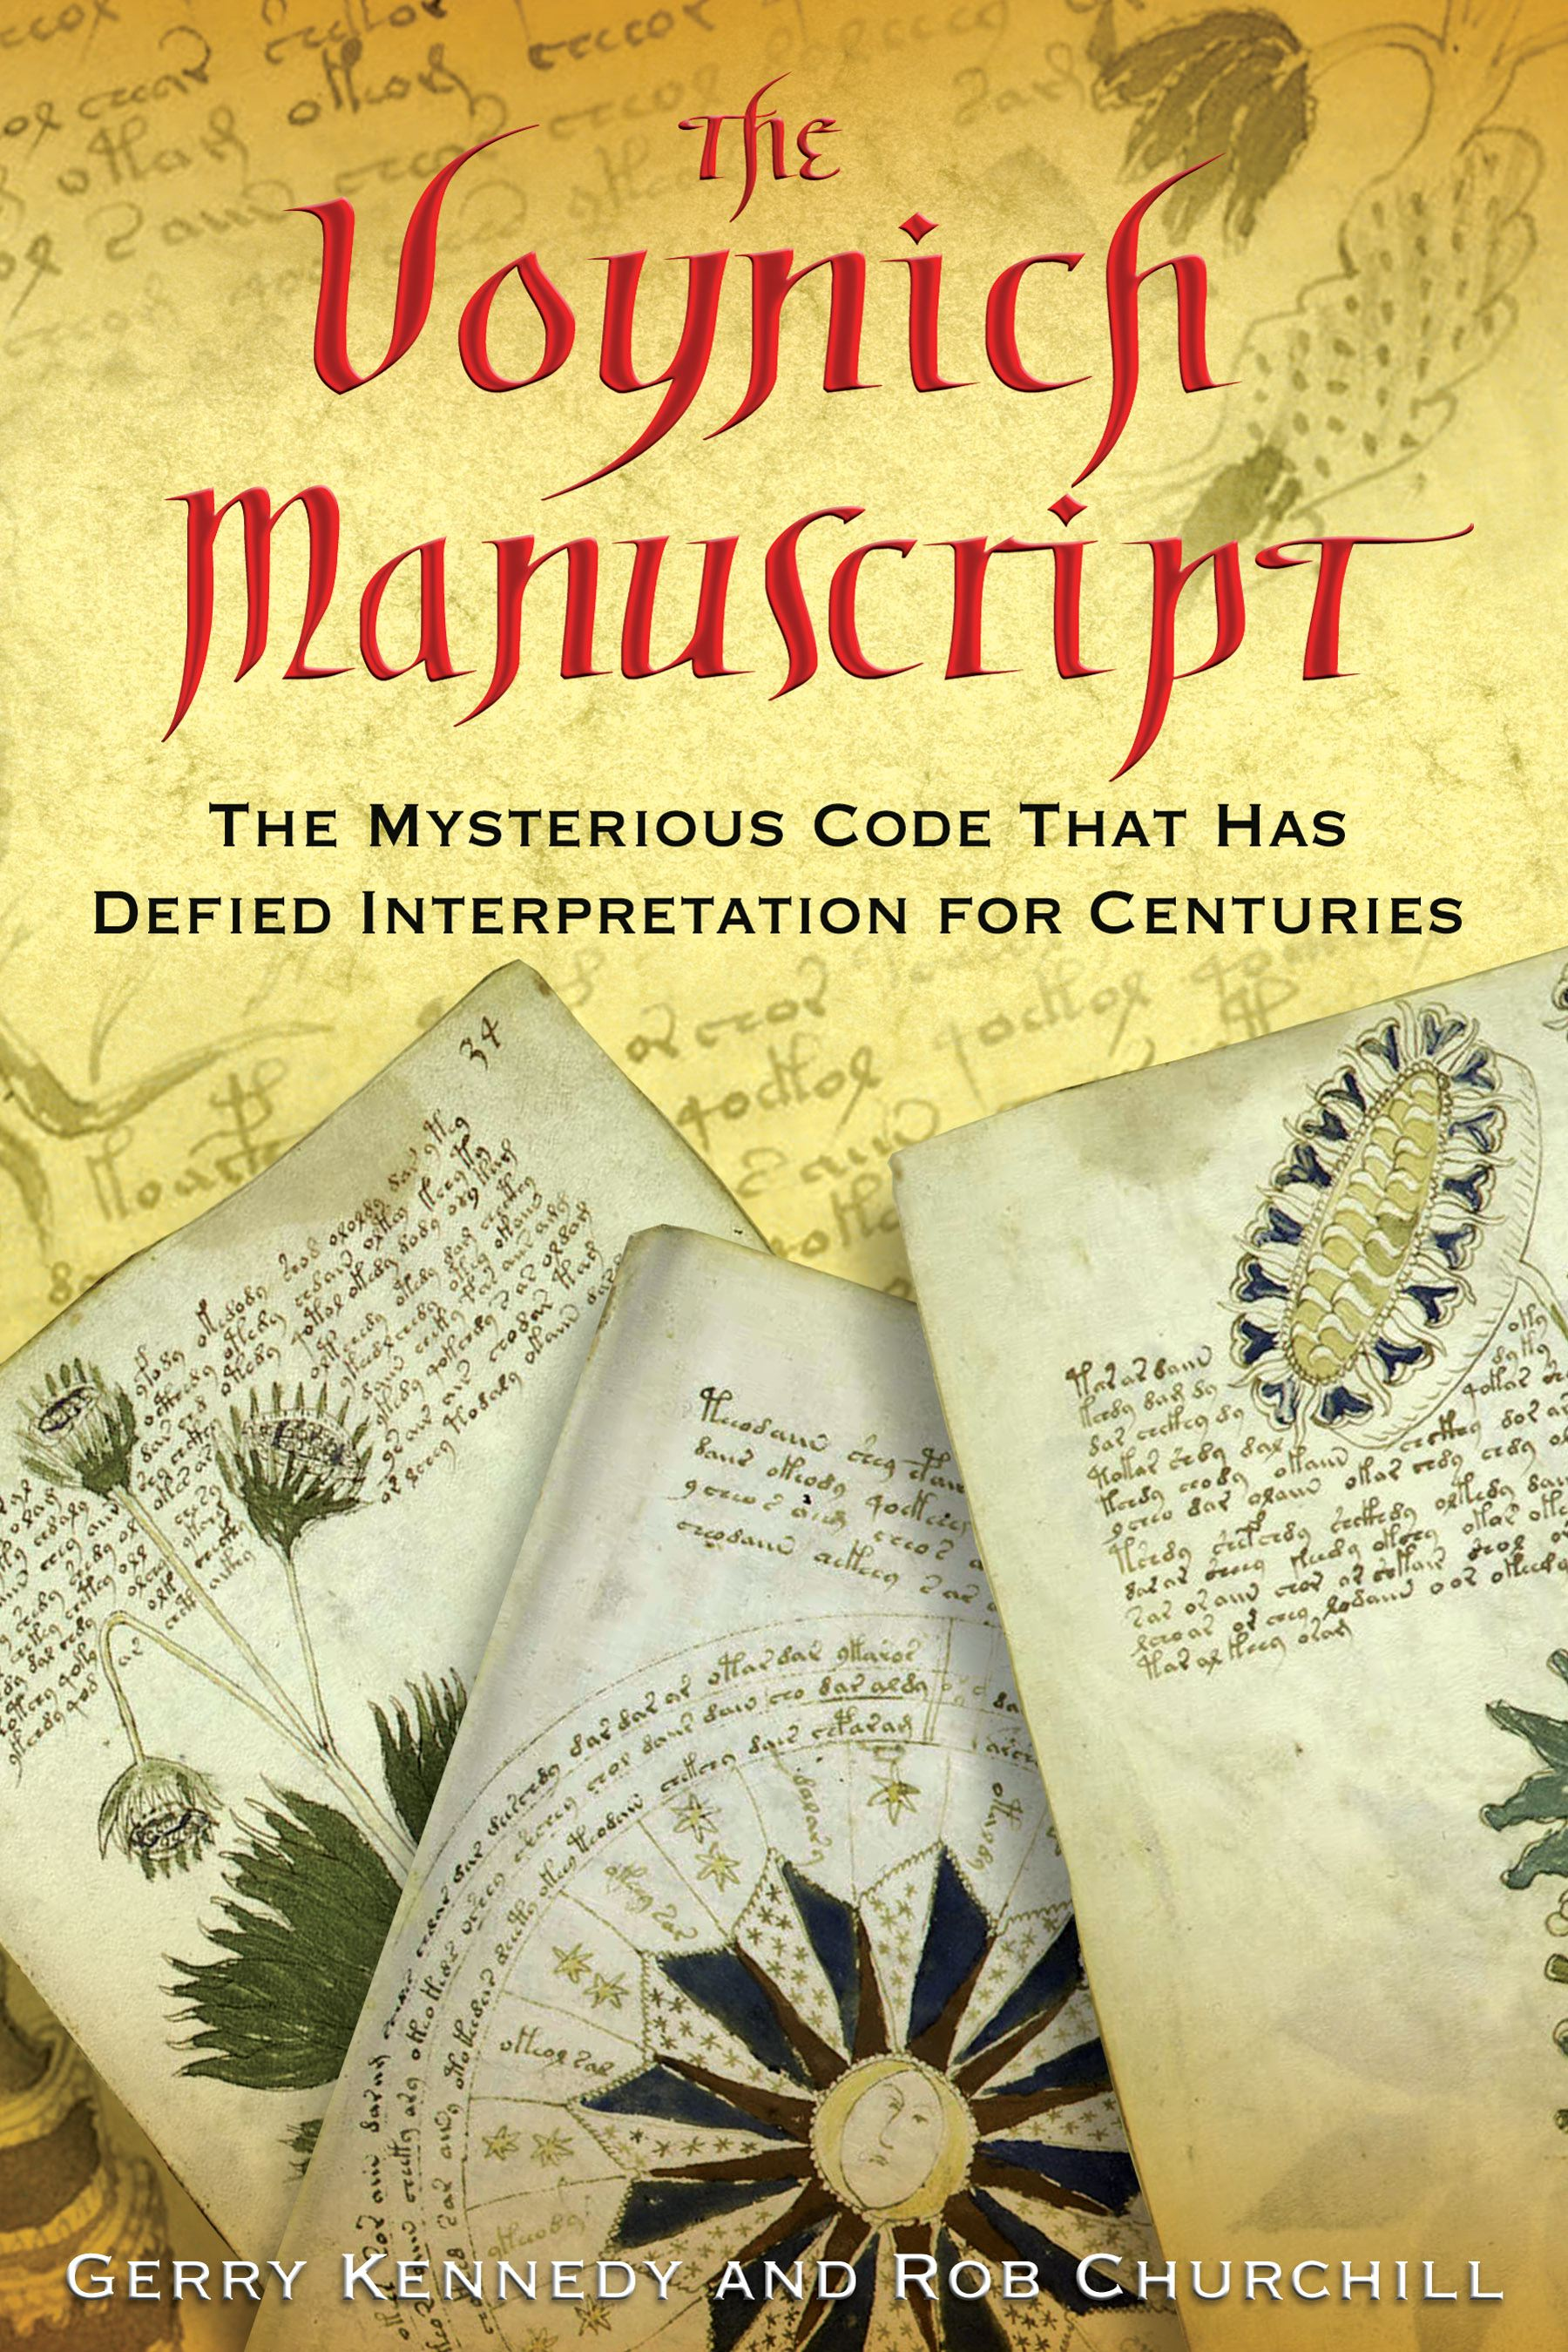 The voynich manuscript 9781594771293 hr